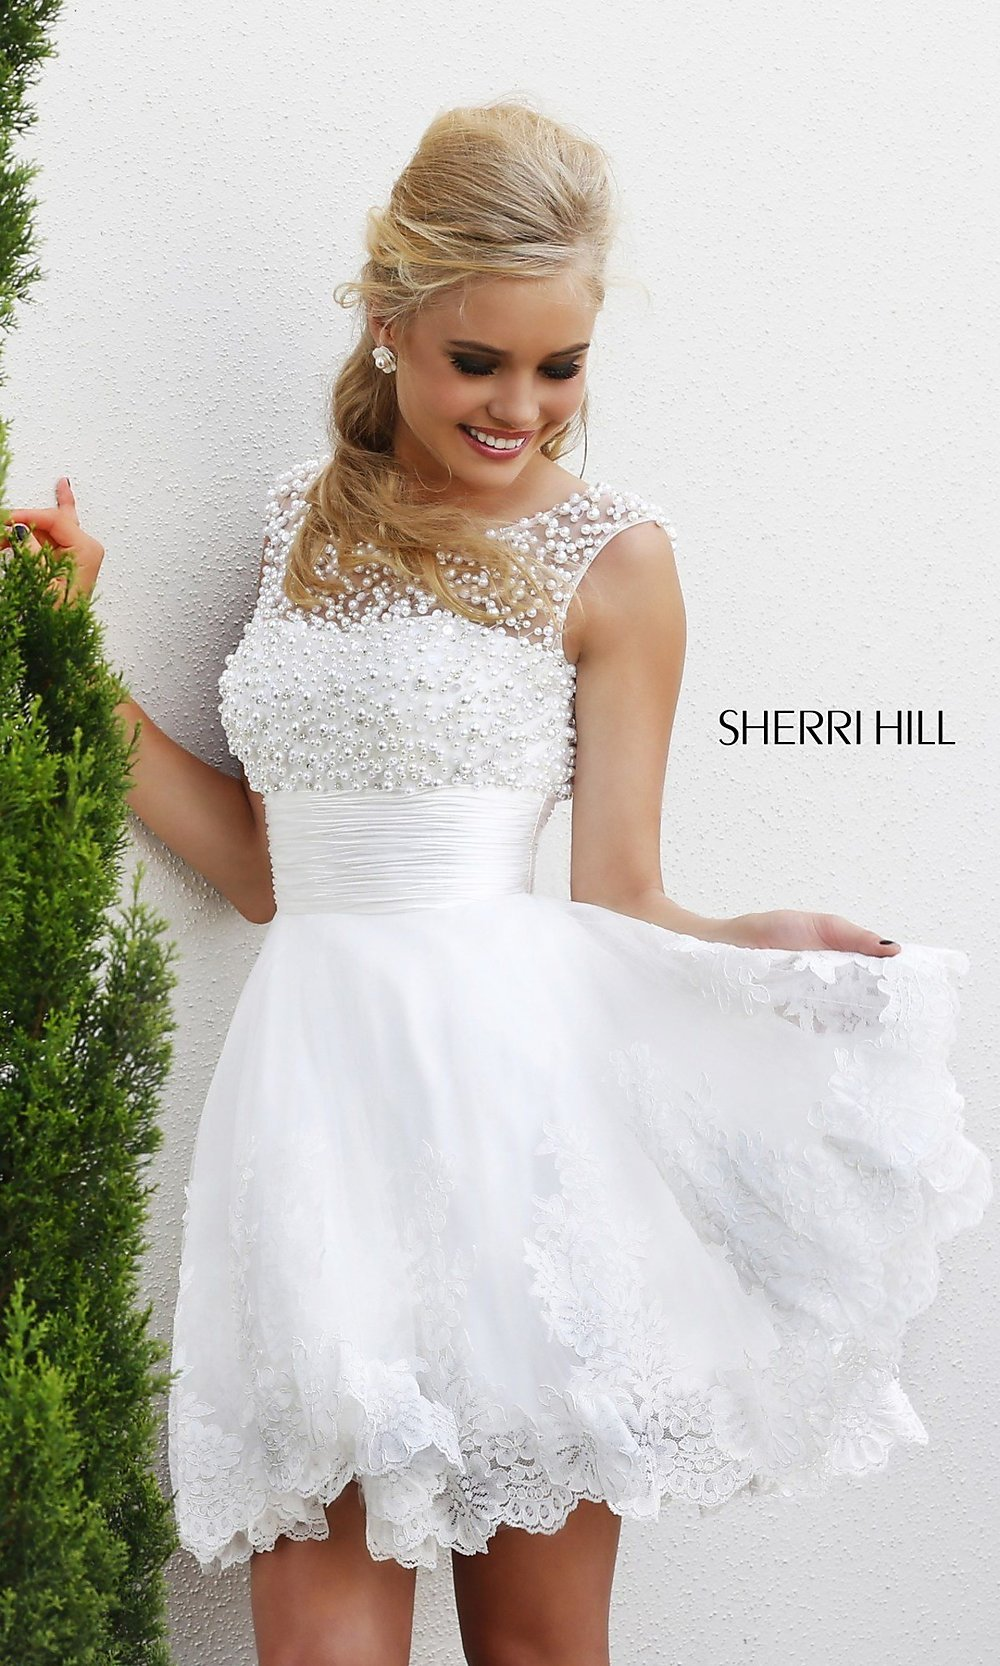 Sherri Hill Prom Dress, Short White Dress for Prom